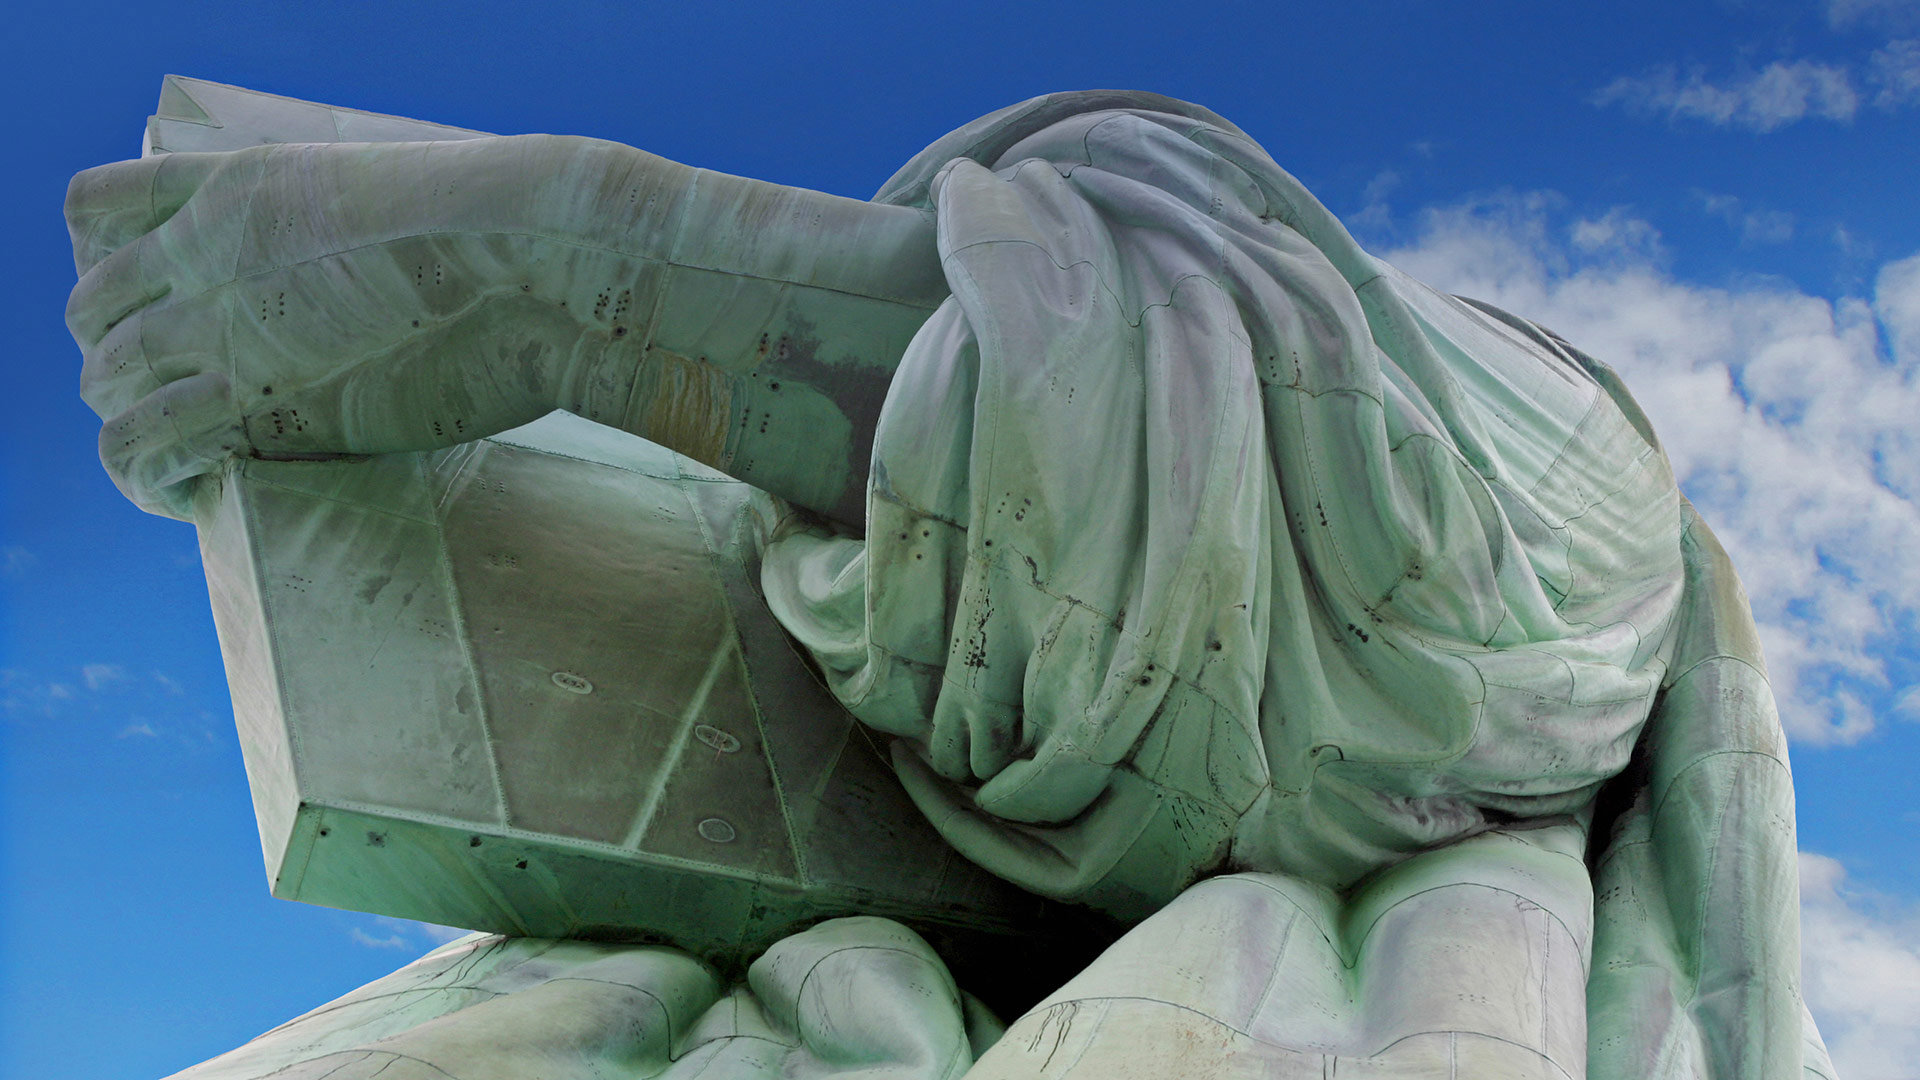 Detail of the Statue of Liberty, on Liberty Island, New York (© Judy Dillon/Getty Images Plus)